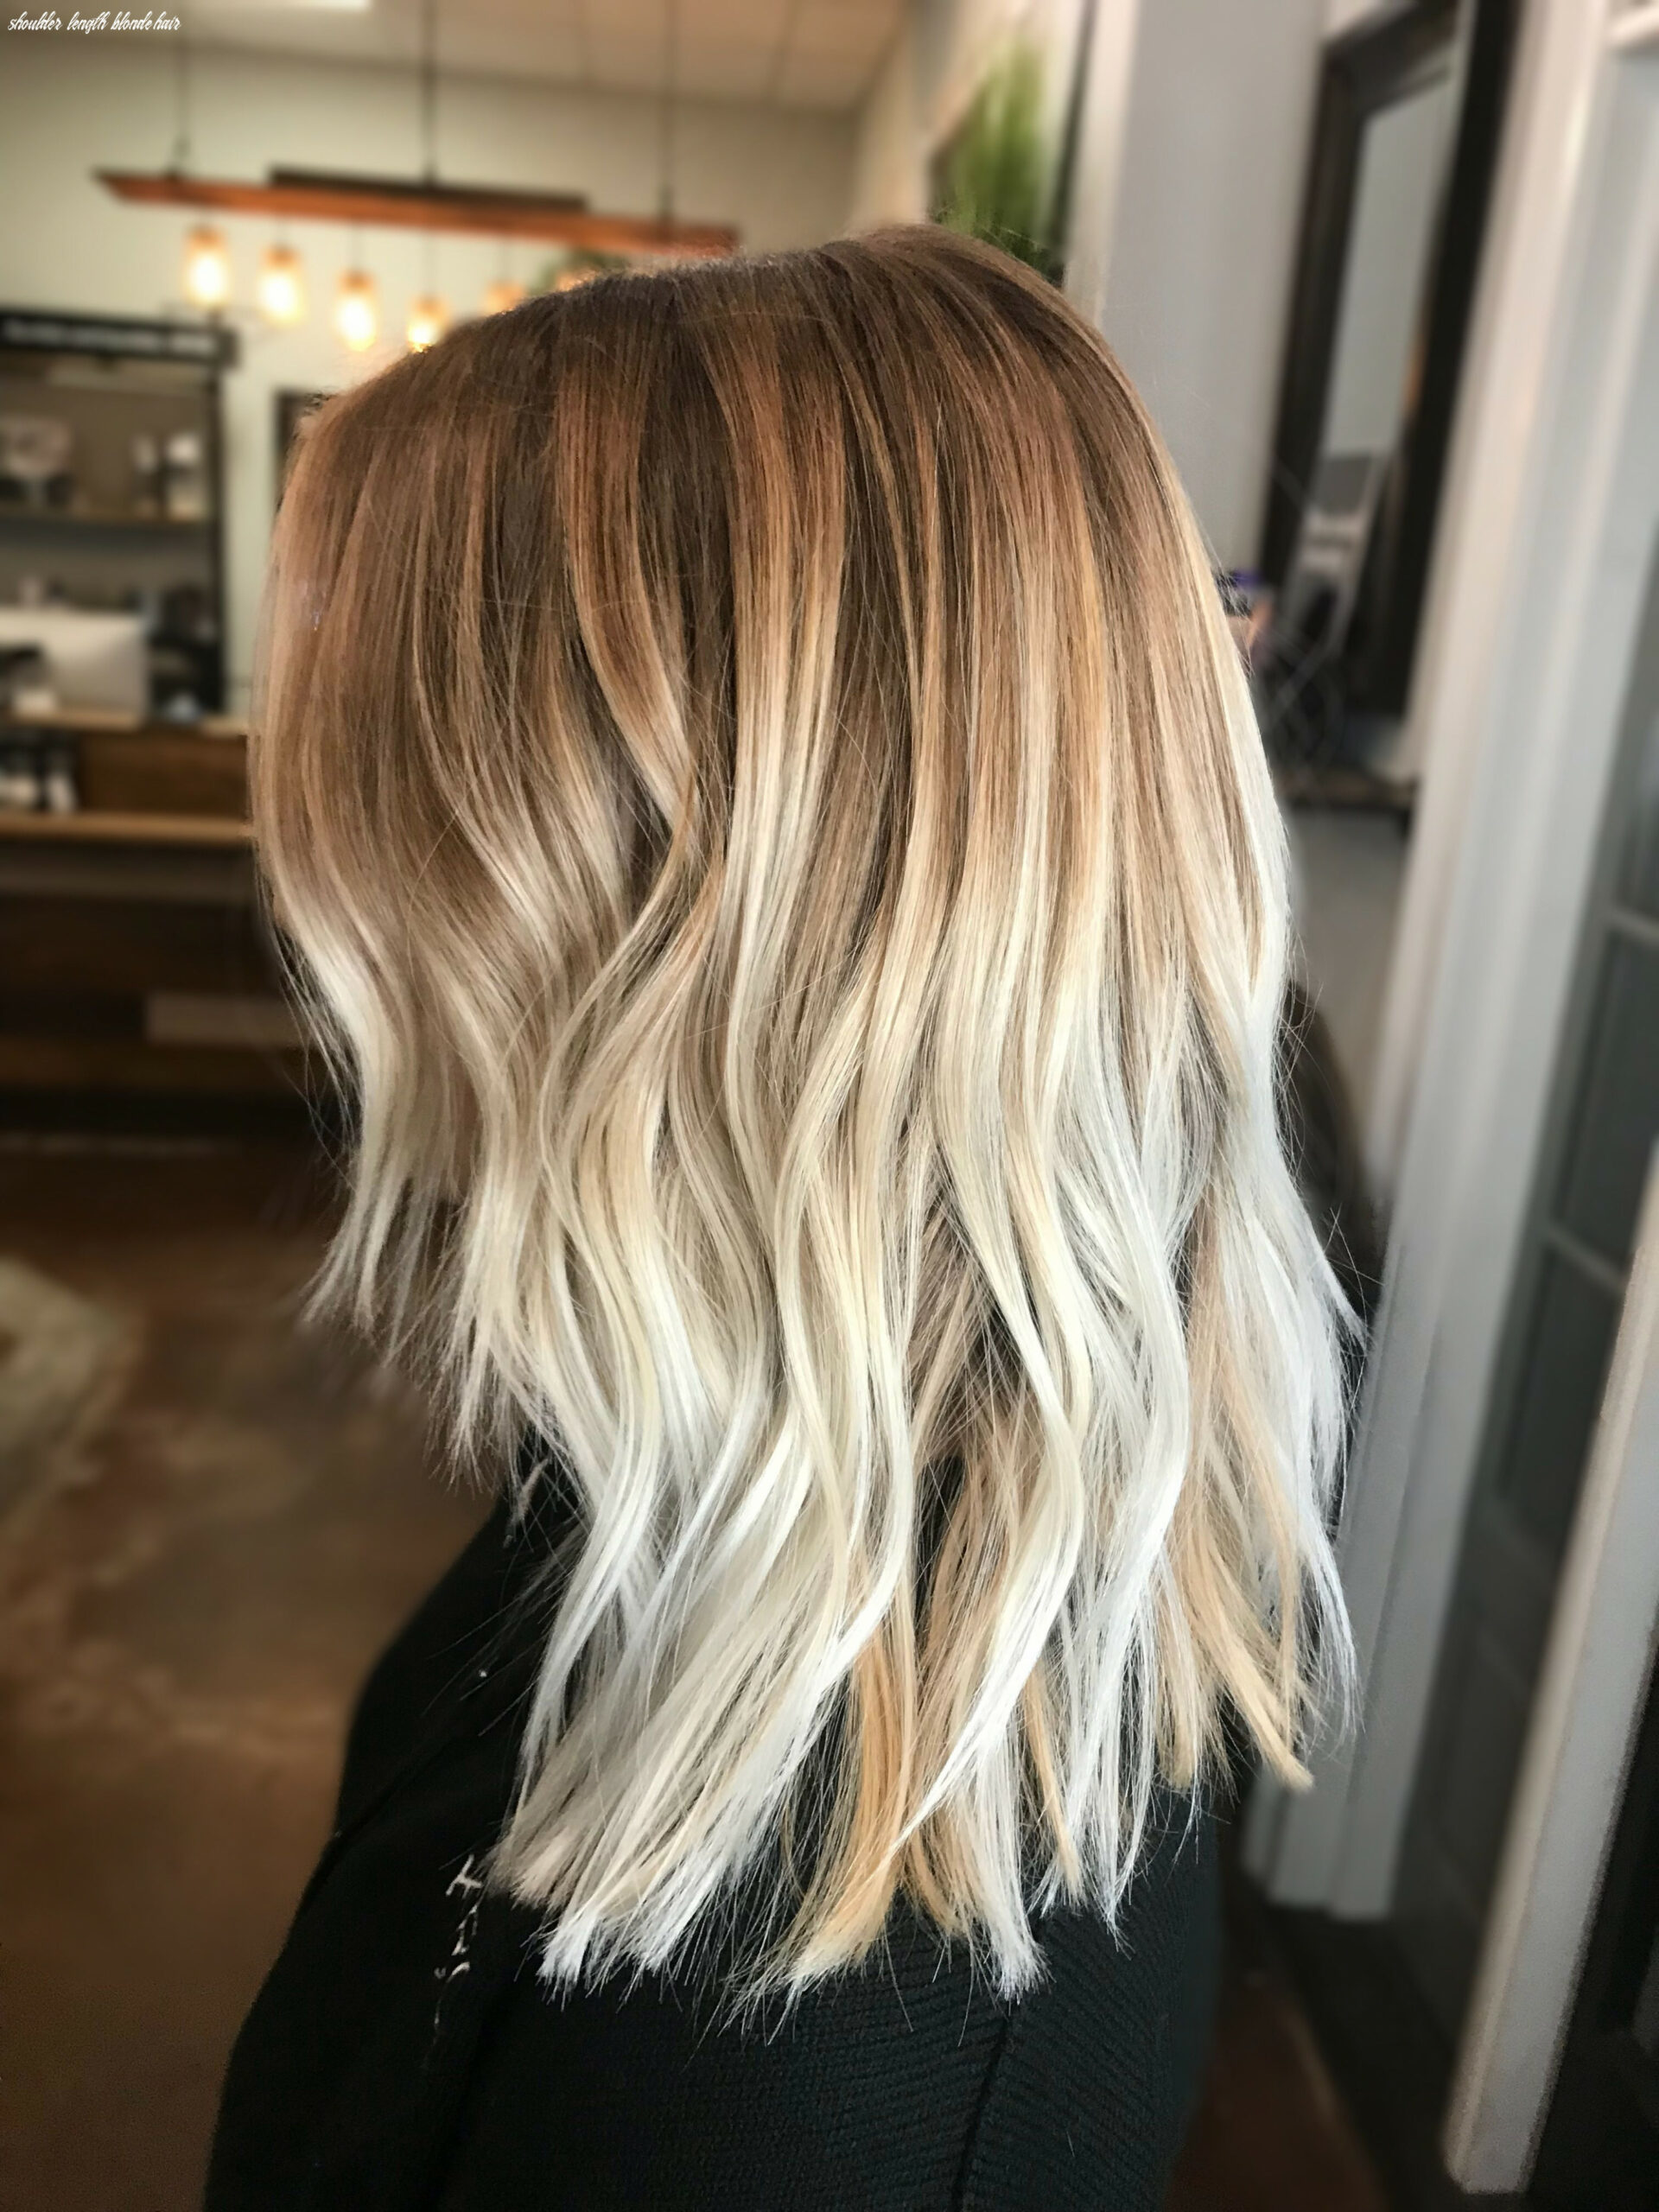 Blonde balayage / blonde highlights / bright blonde hair